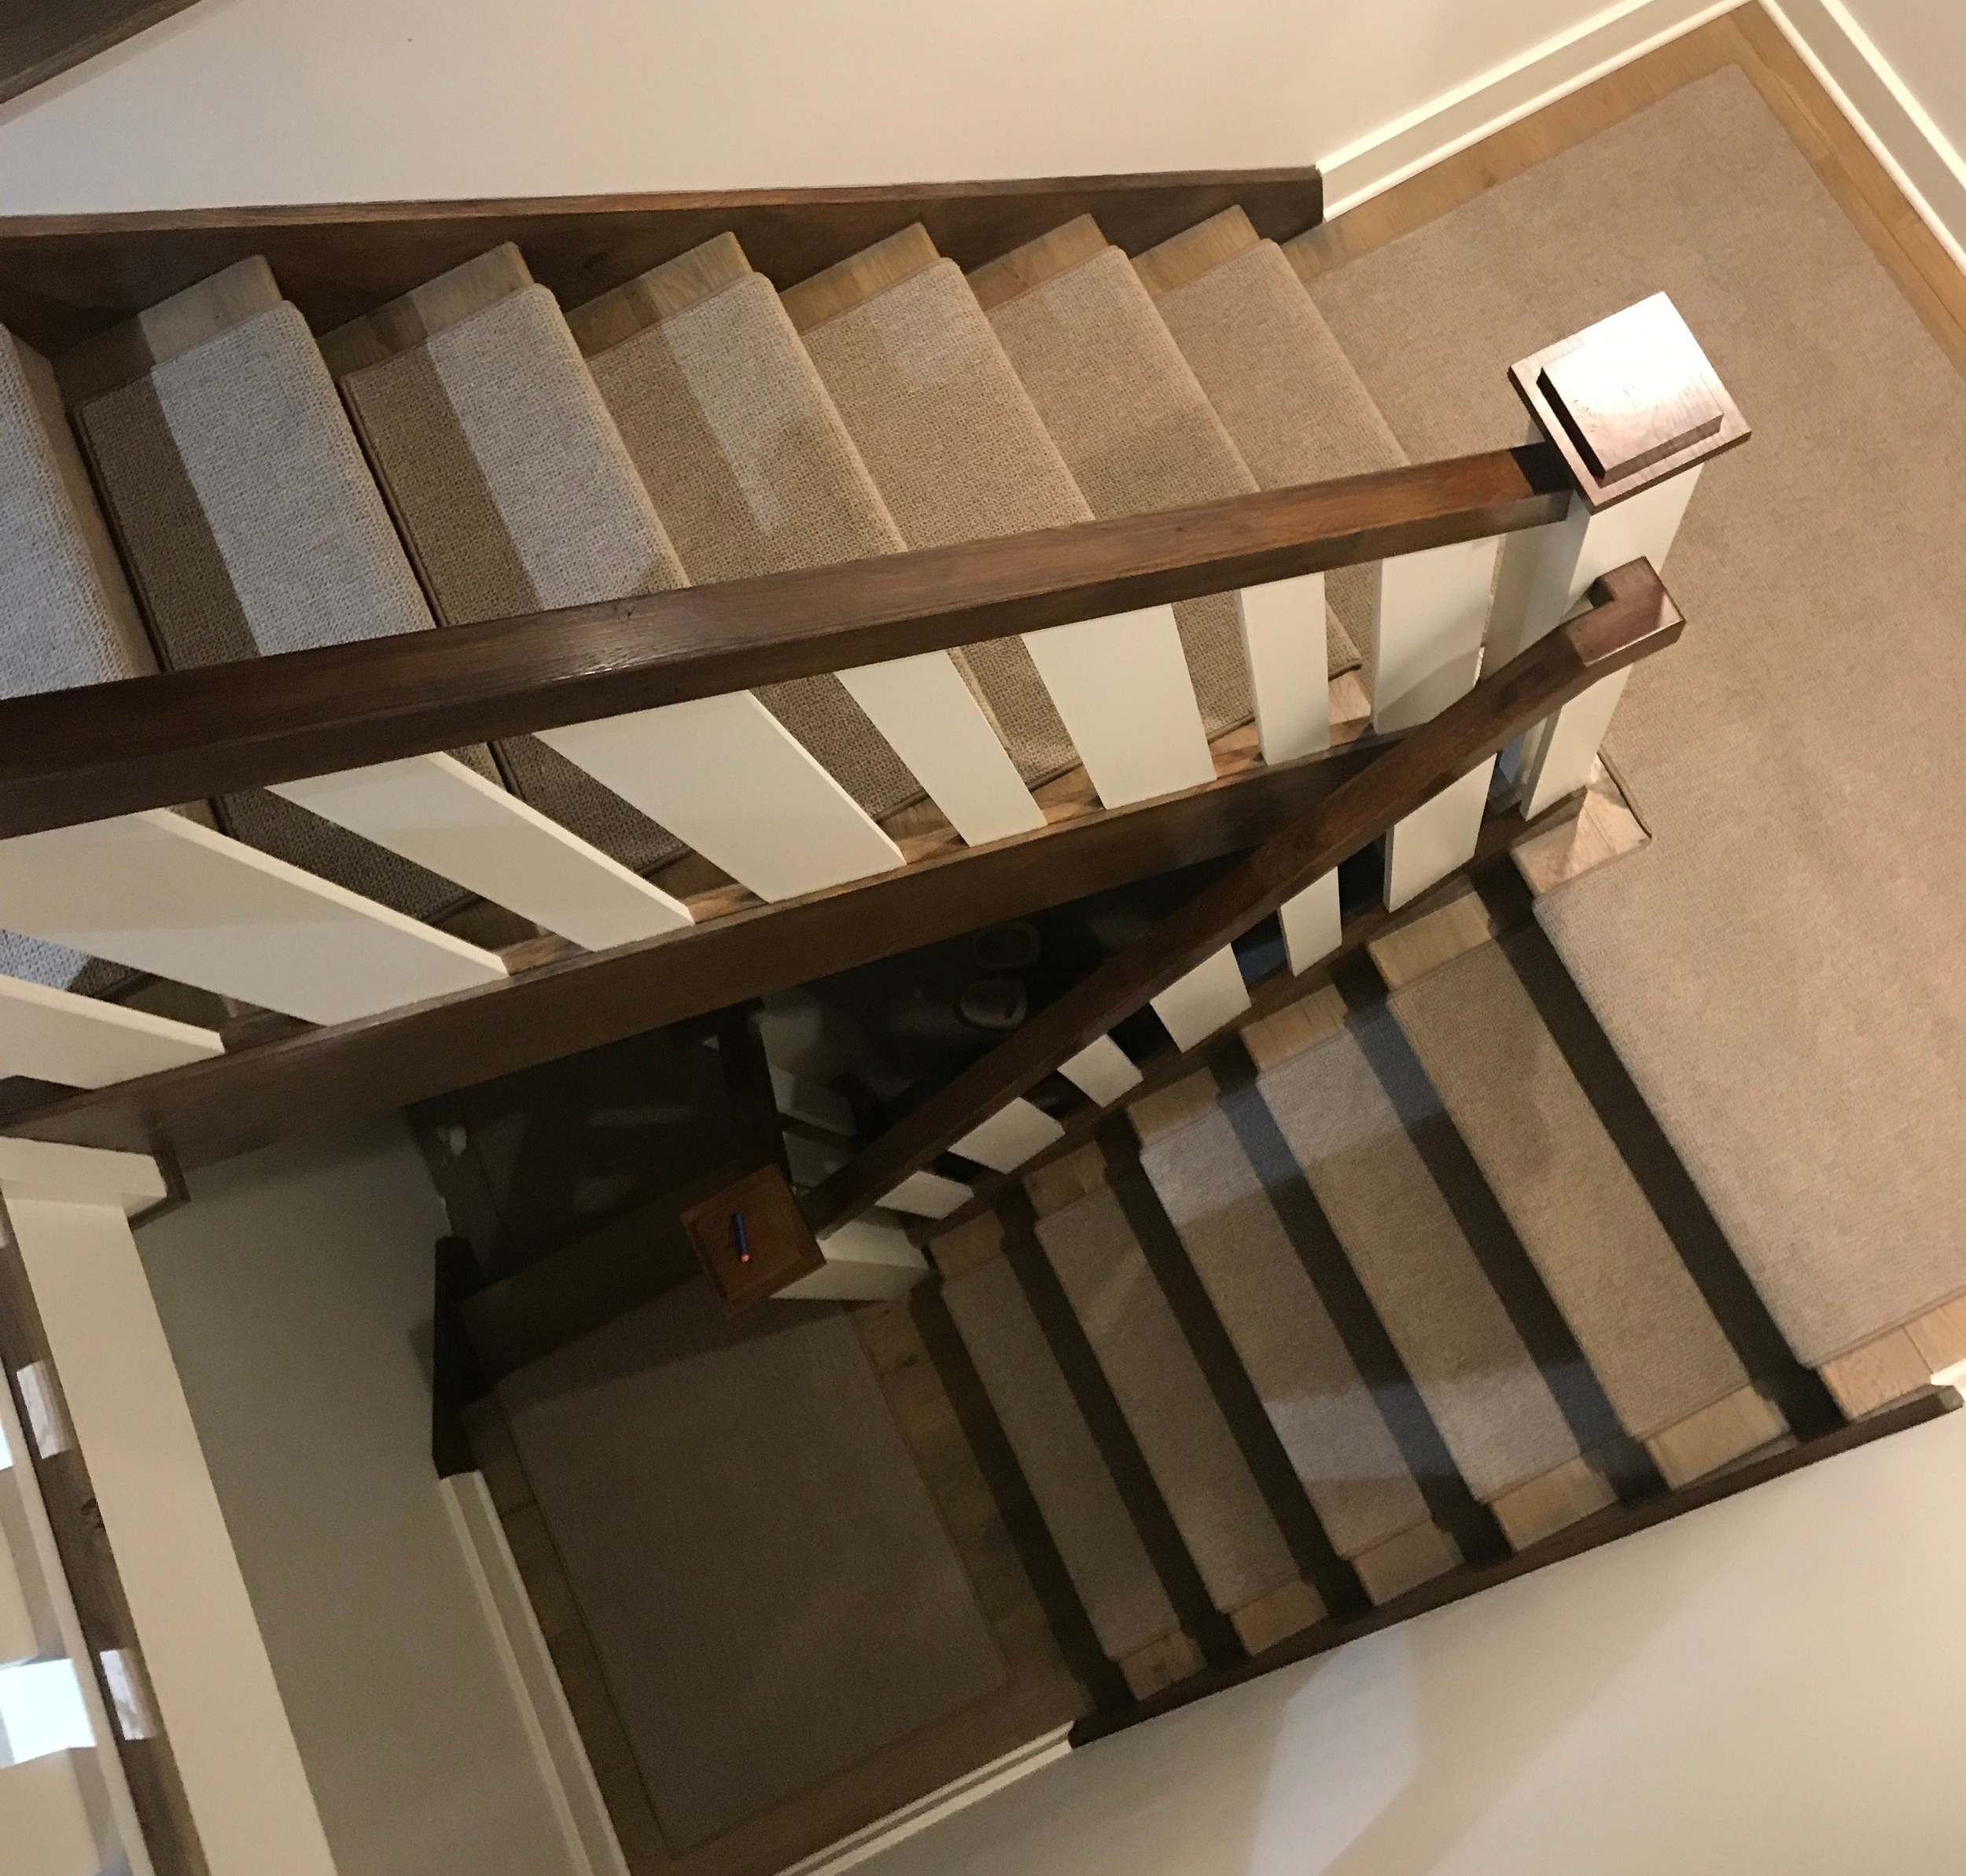 Indoor Carpet Stair Treads Oak Valley Designs | Carpet For Wooden Stairs | Search And Rescue | Bedroom | Carpeted Stair Railing Wooden Floor | Transition | Beautiful